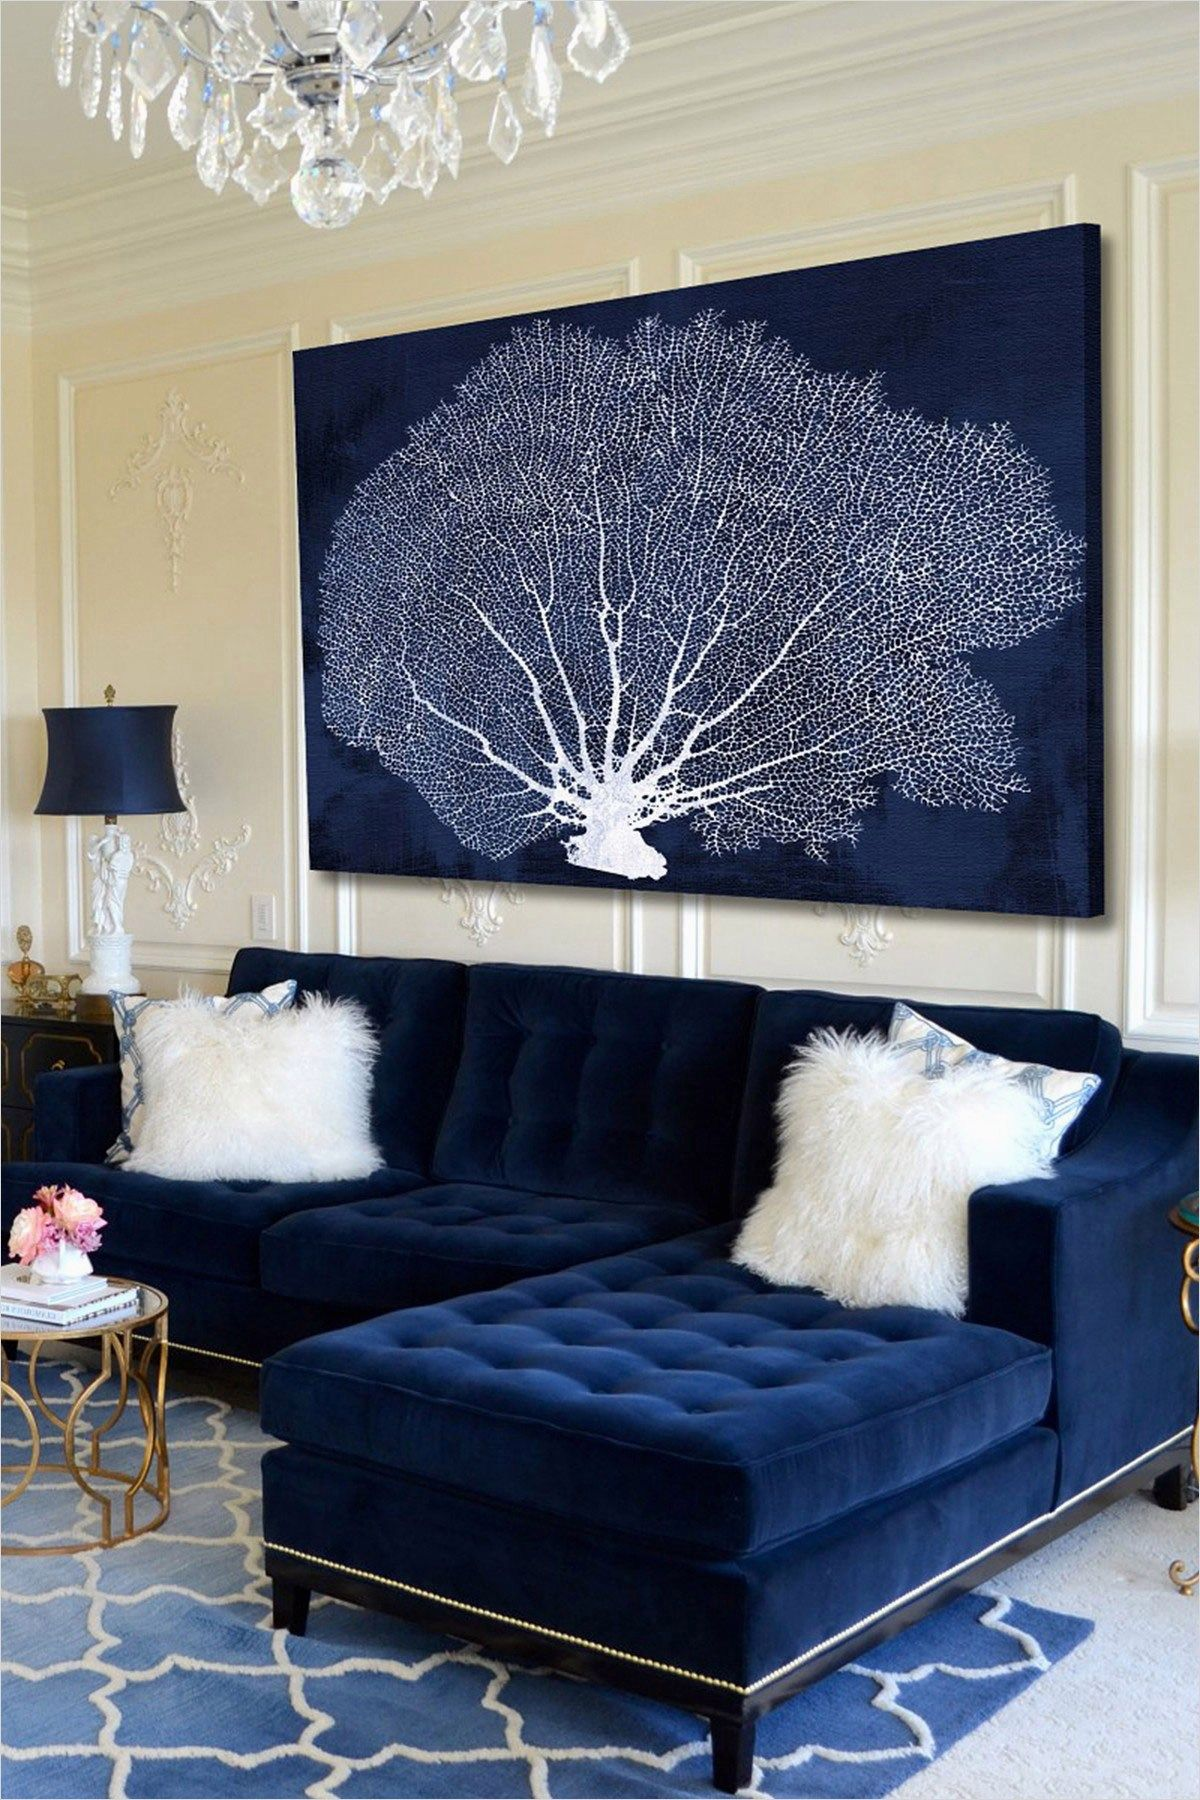 41 Amazing Navy Blue and White Living Room Ideas images